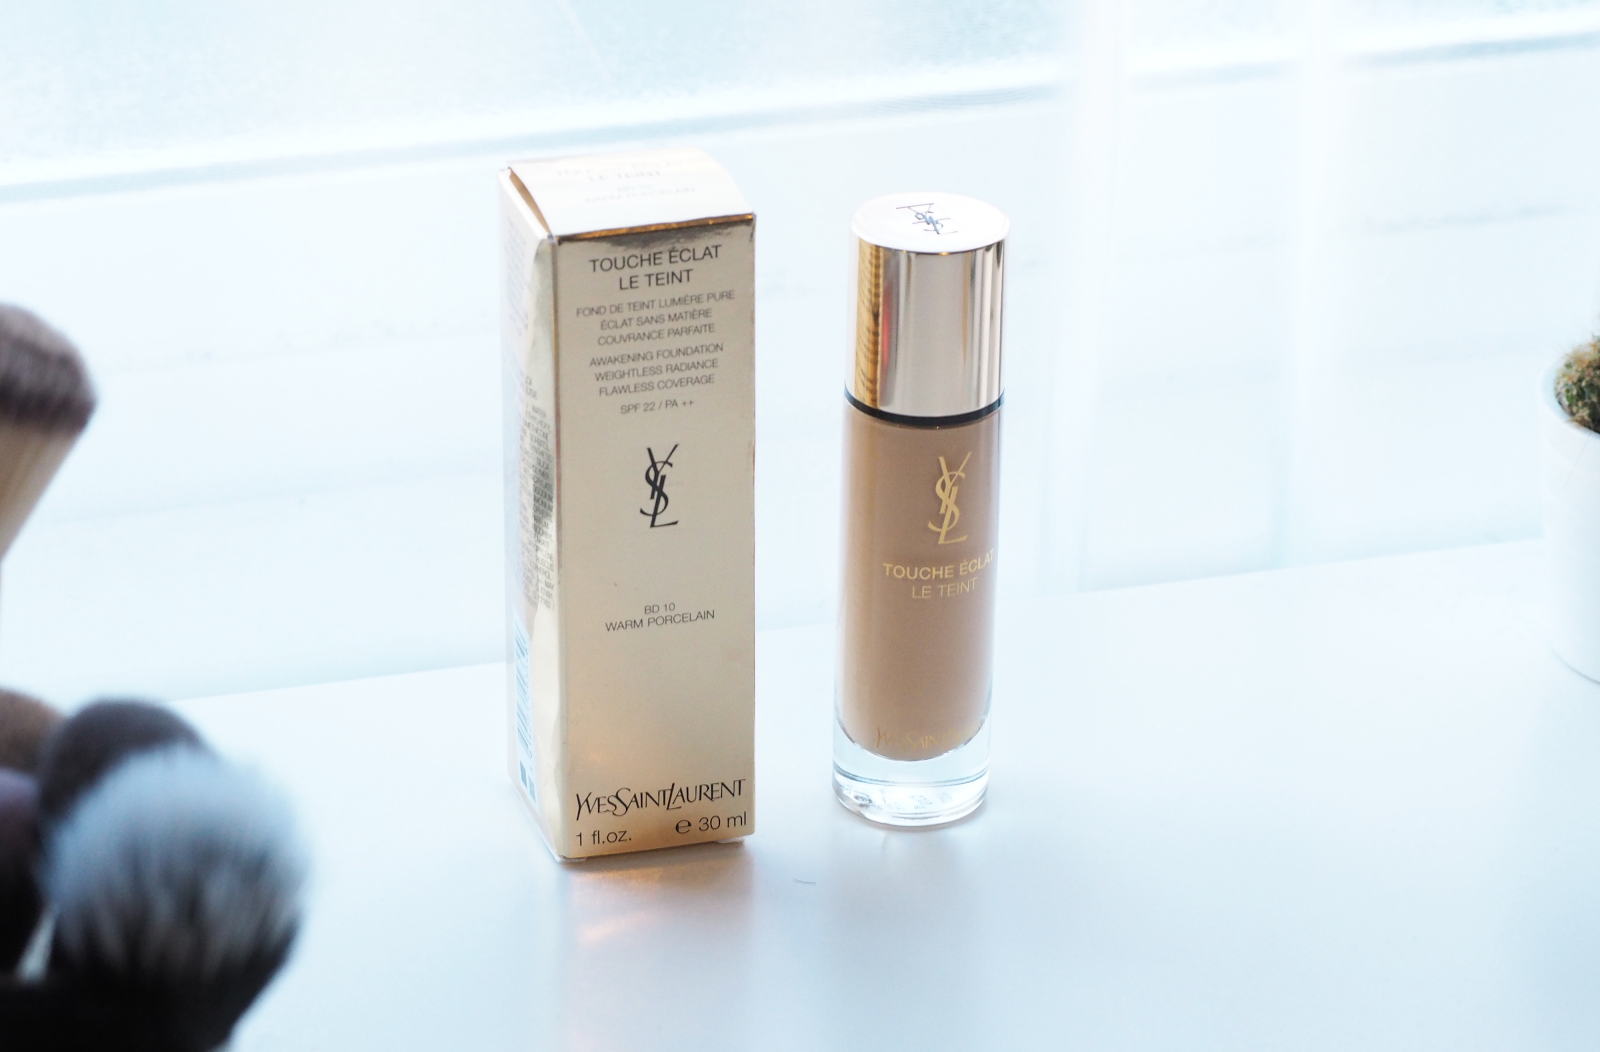 YSL Touche Éclat Le Teint Foundation